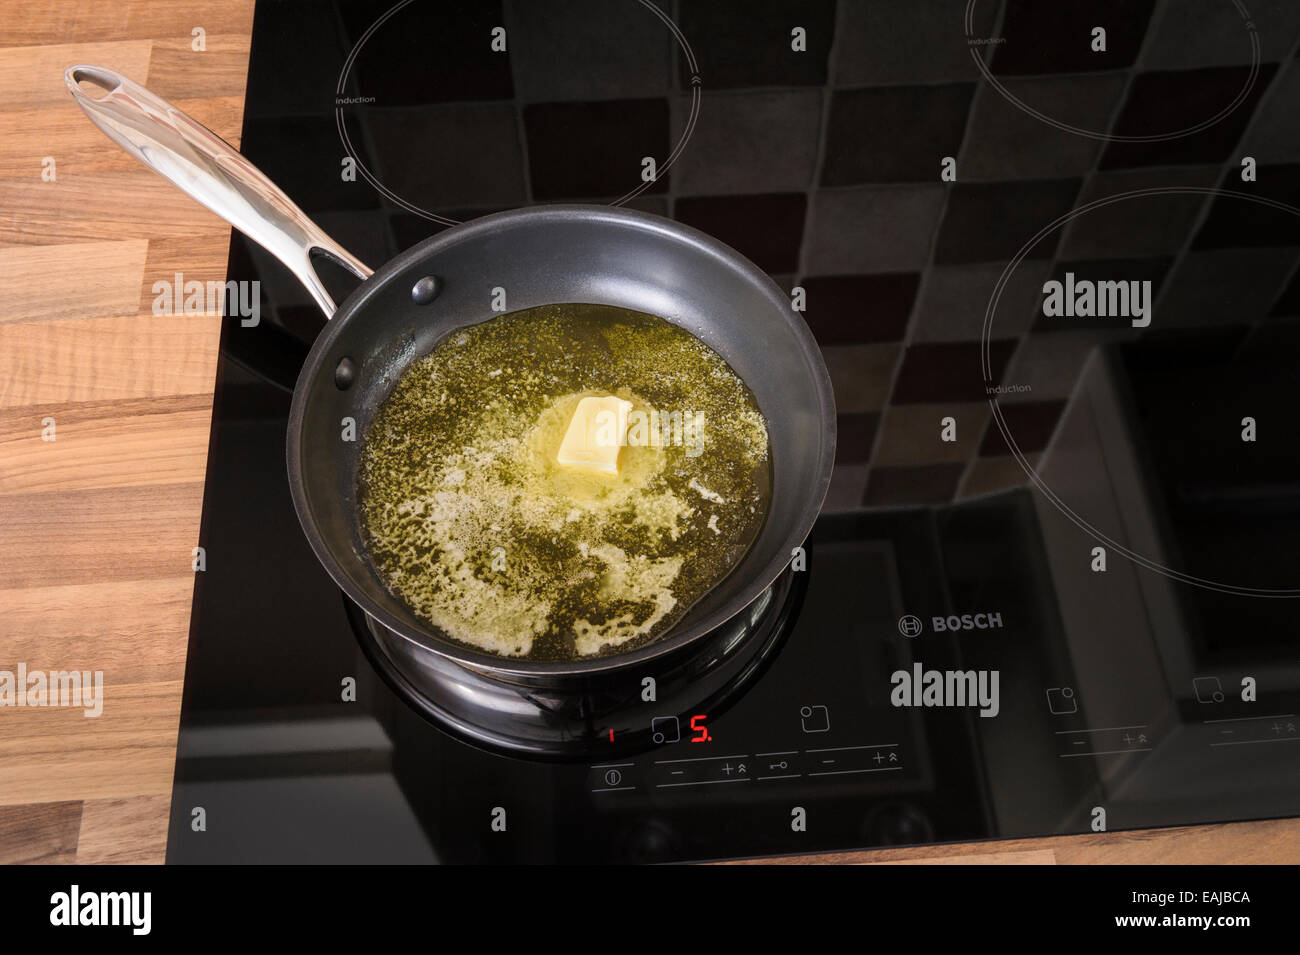 Butter melting in a frying pan, on an induction hob.Unhealthy, cholestrol. - Stock Image